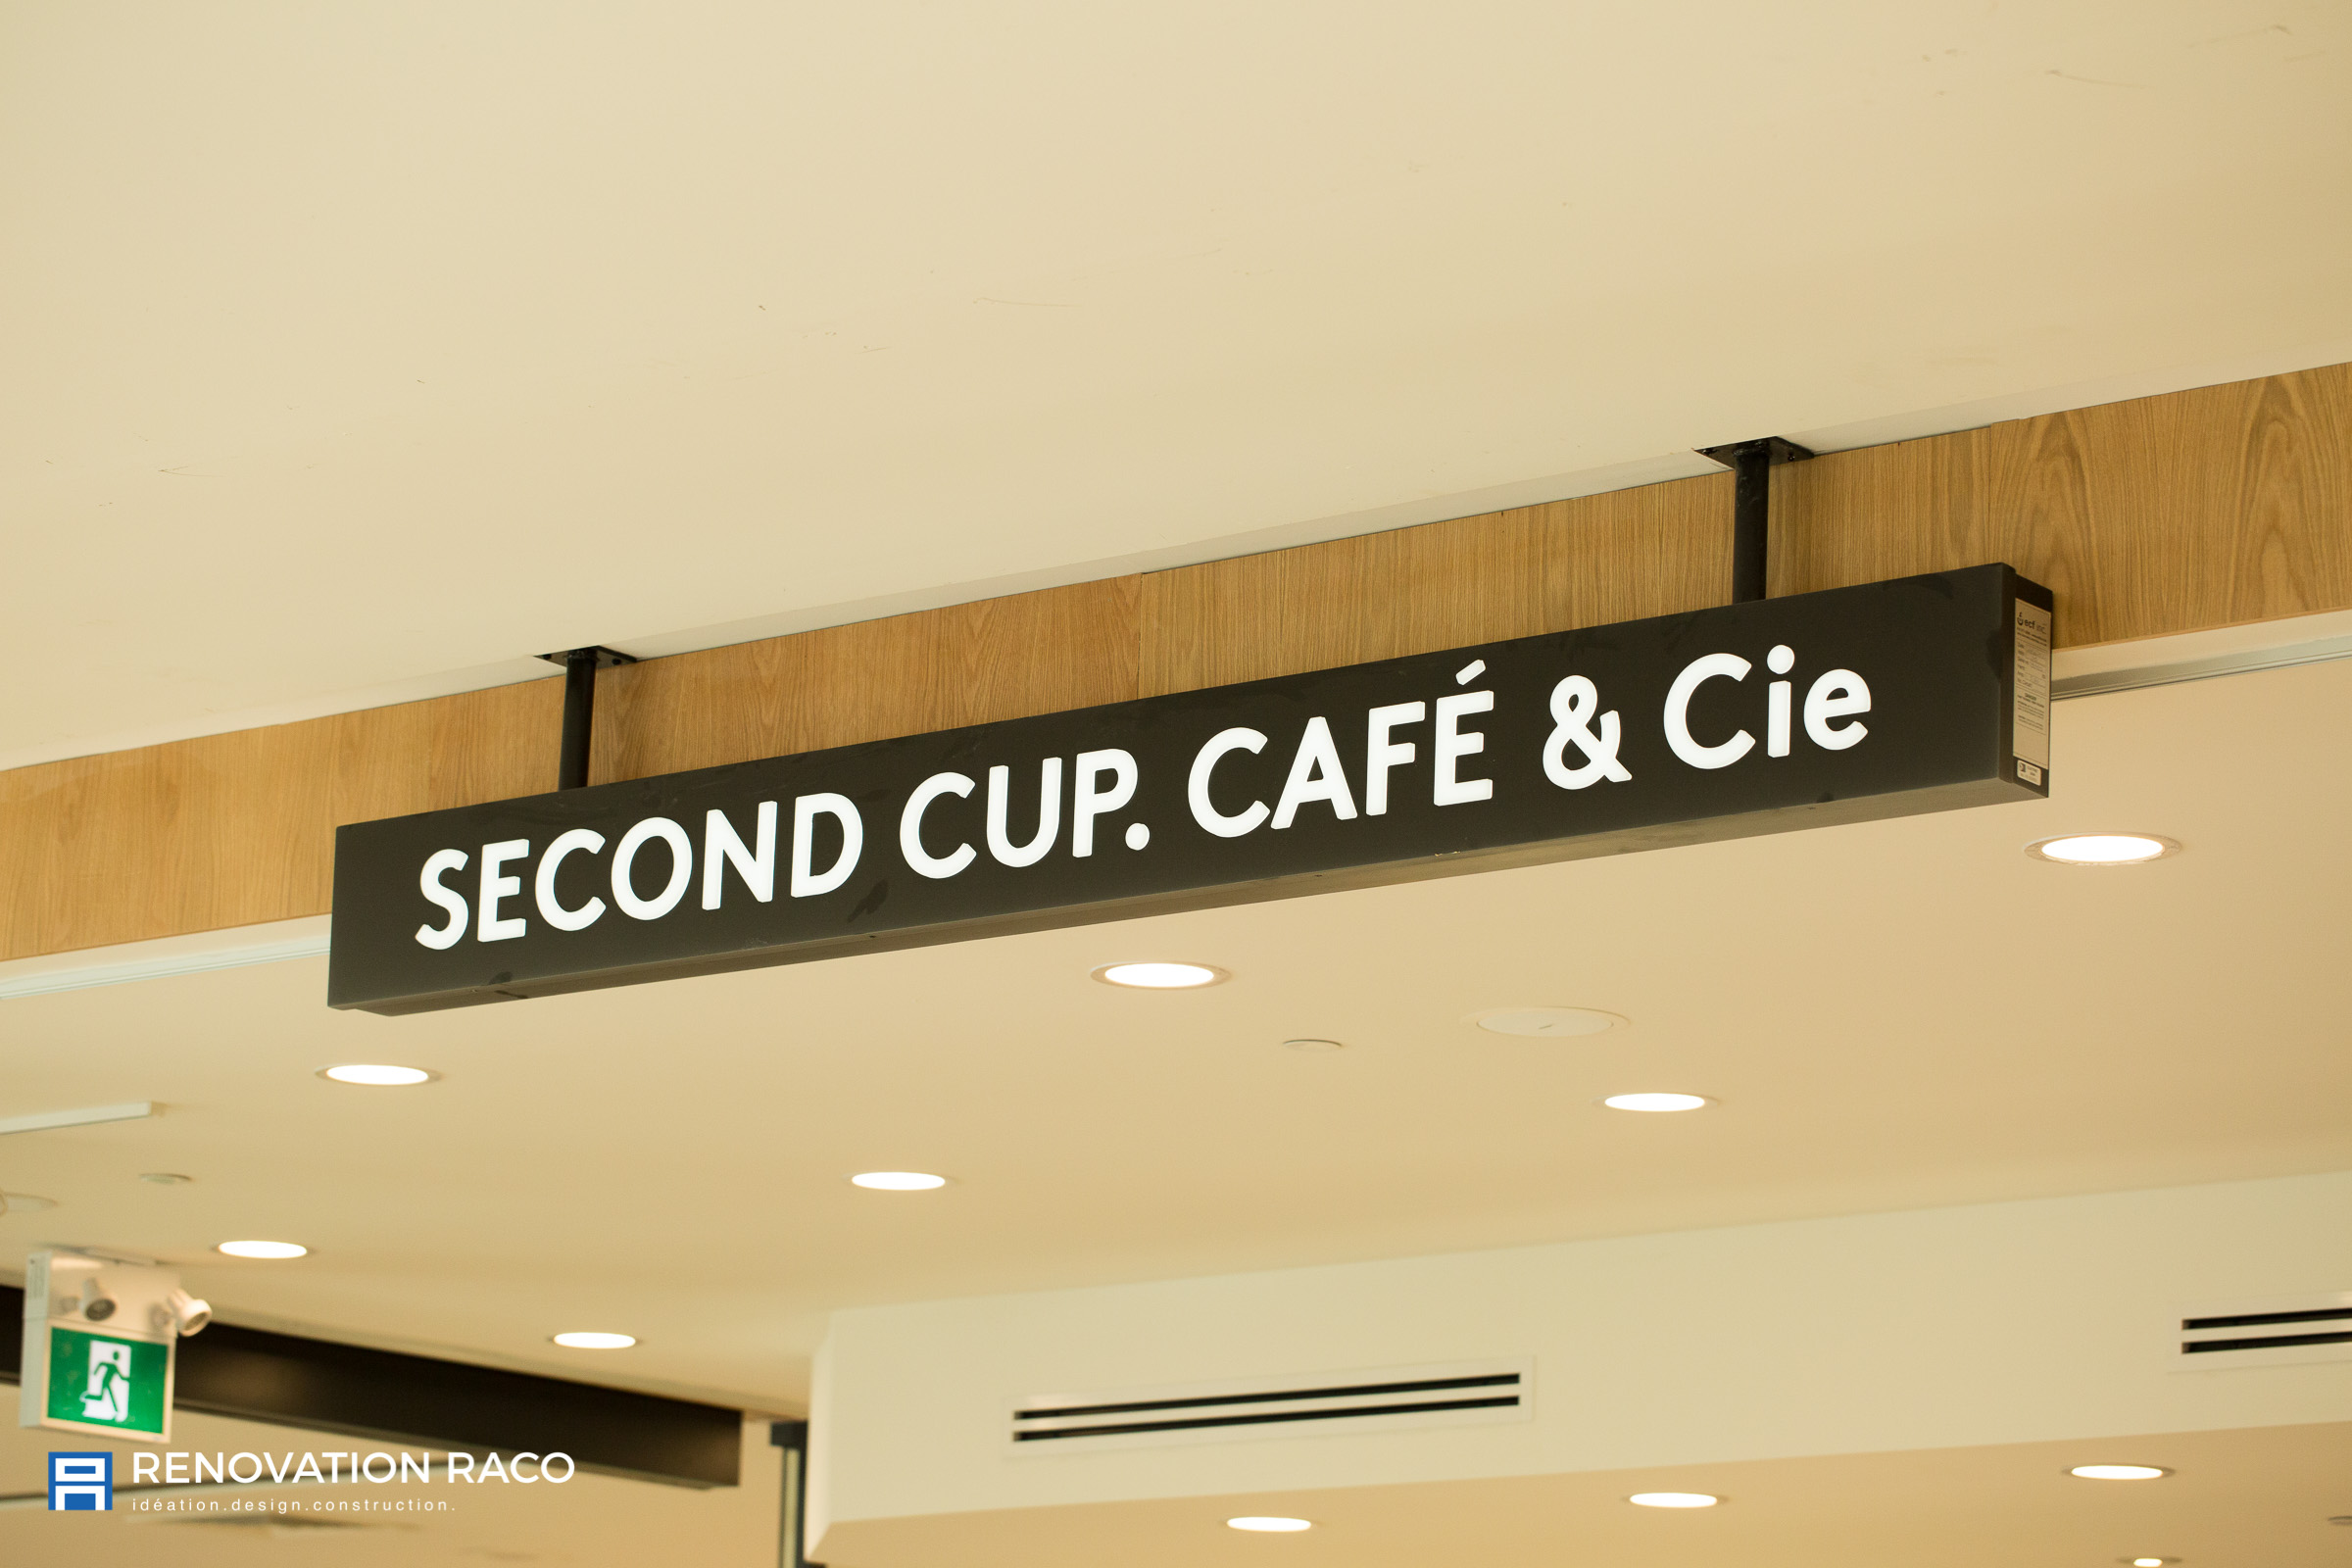 Renovation-Raco-Montreal-Second Cup-05.jpg